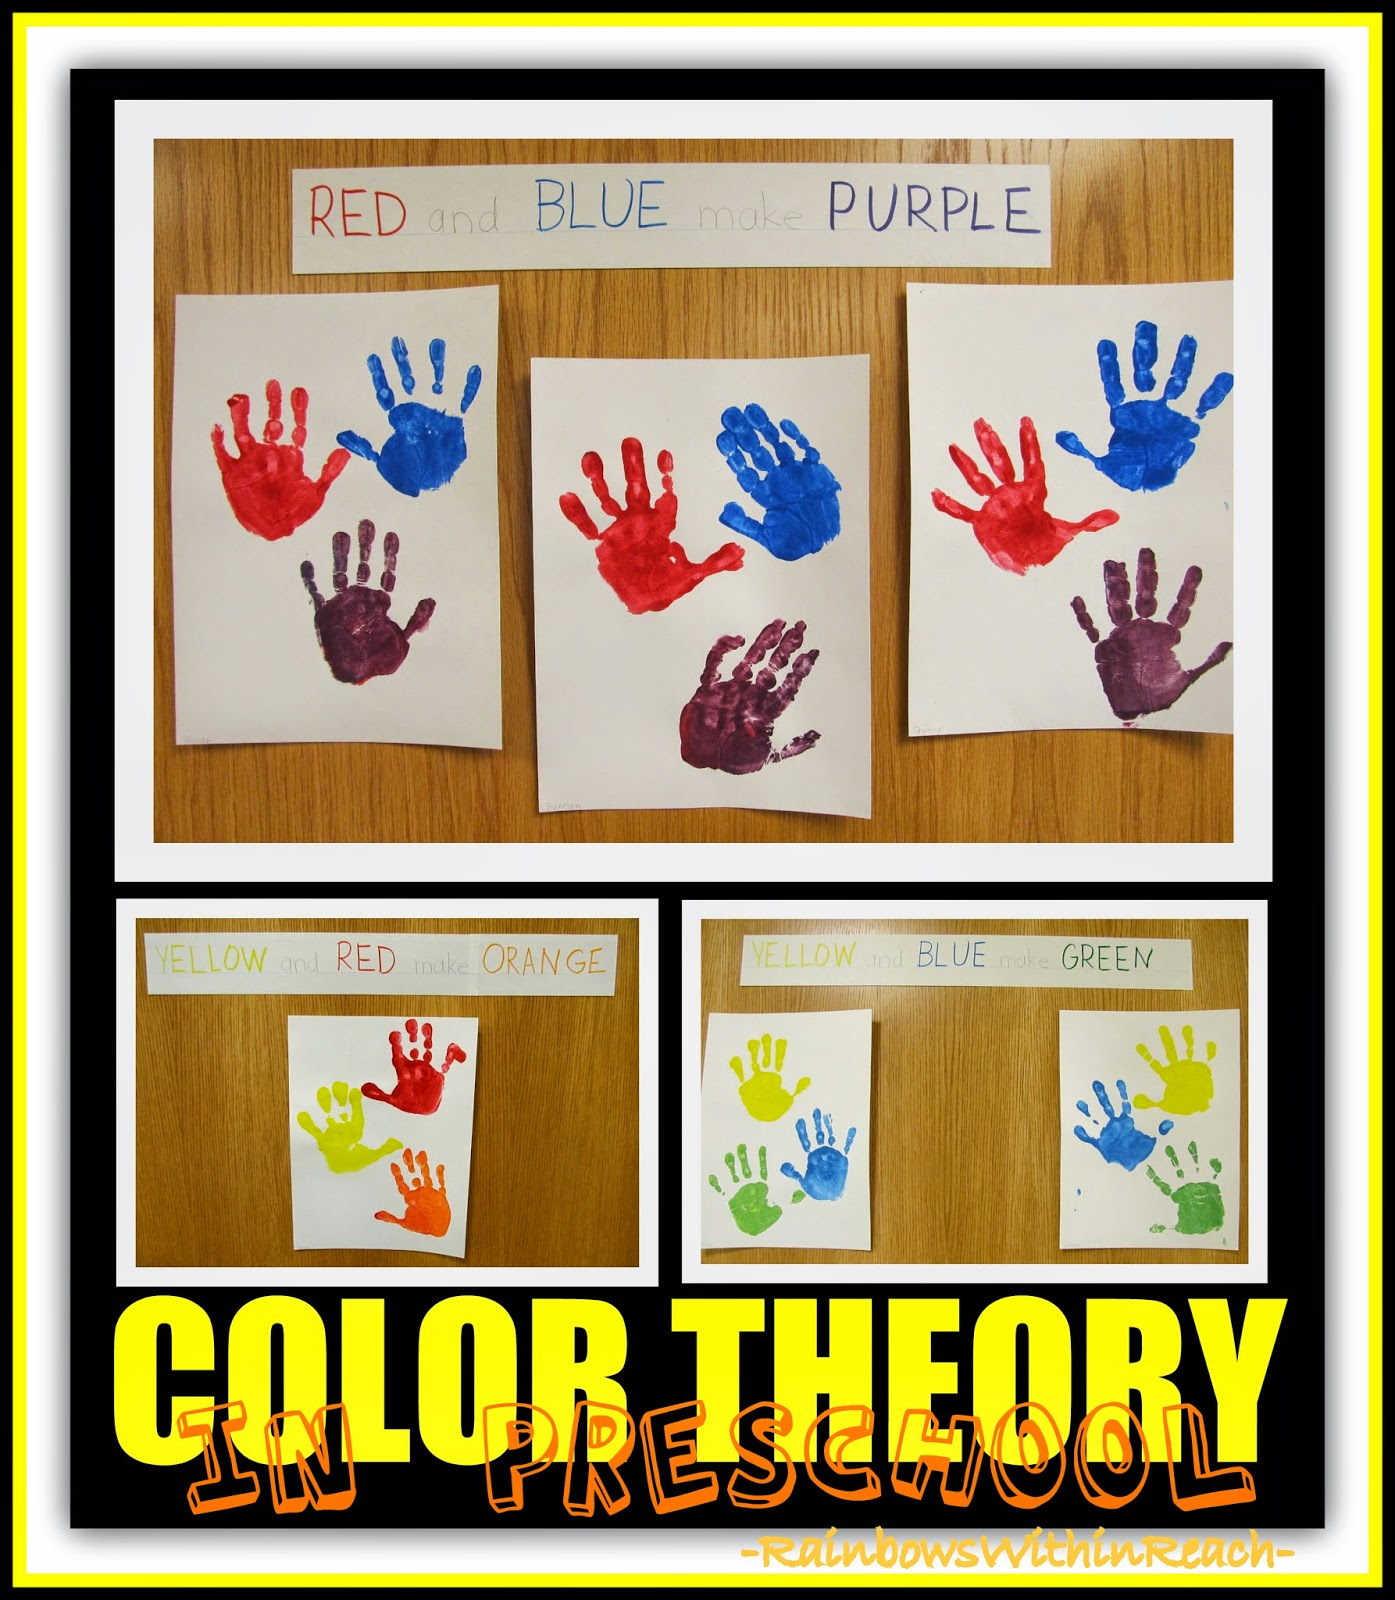 Color Theory explained through Painted Handprints